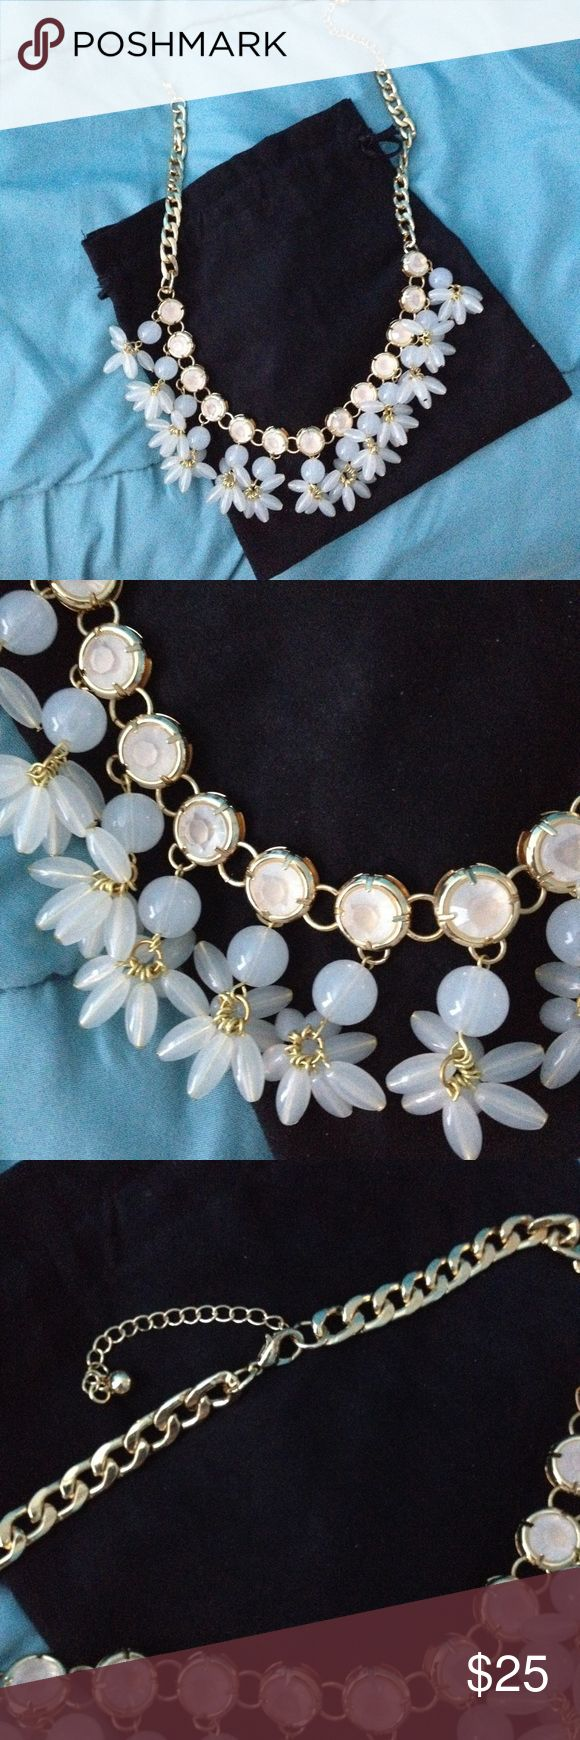 """Statement Necklace Gorgeous statement necklace with gold-tone chain link design, faint cream/gold colored round jewel pieces, and dangling milky white colored flower-type design. Necklace measures 19.5"""" laying flat, with additional 2.5"""" adjustable length lobster clasp closure (photo 3). Comes in a black Baublebar dustbag. Gently used condition with minor wear. Photo 4 shows necklace worn on longest link. ***** This is NOT J. Crew.***** Tagged because of similar style. J. Crew Jewelry…"""